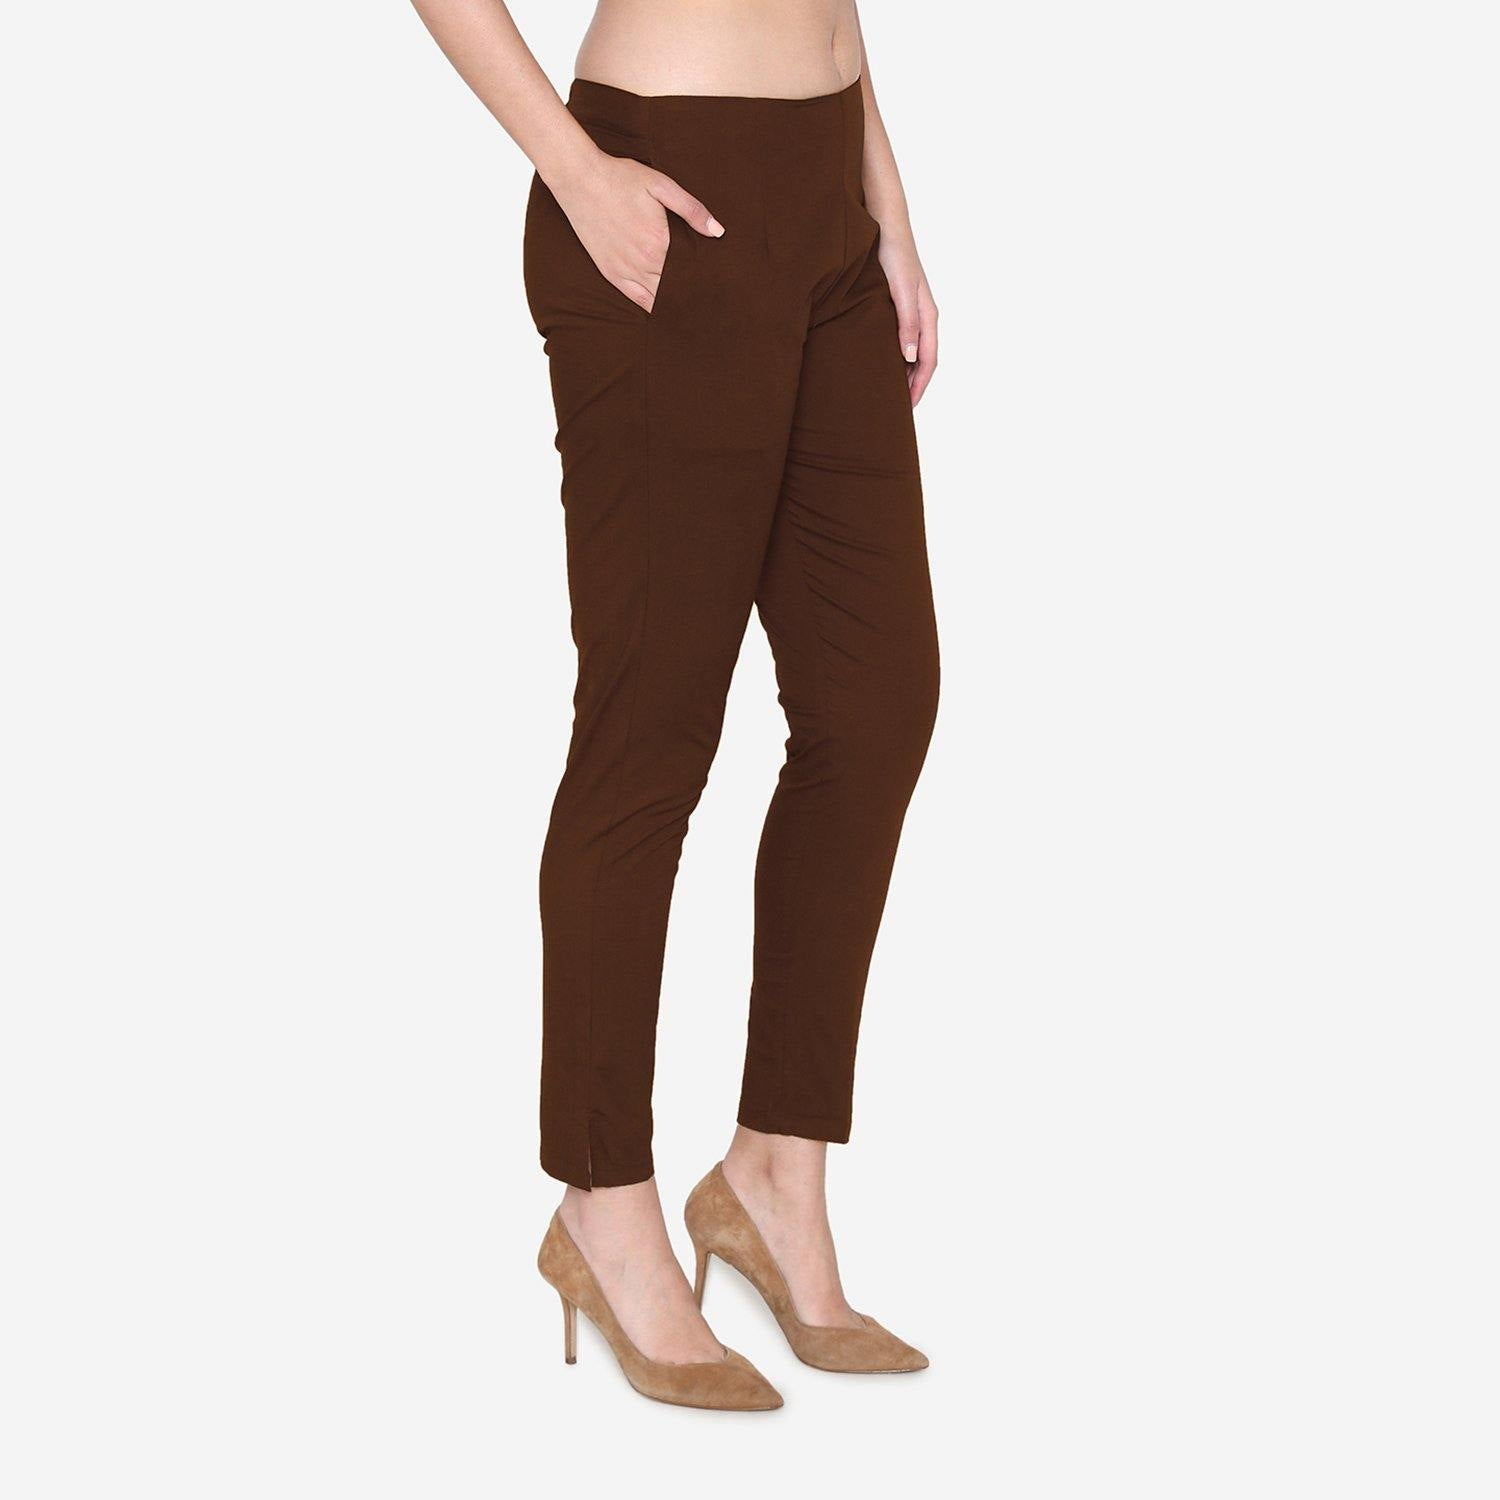 Vami Women's Cotton Formal Trousers - Brown